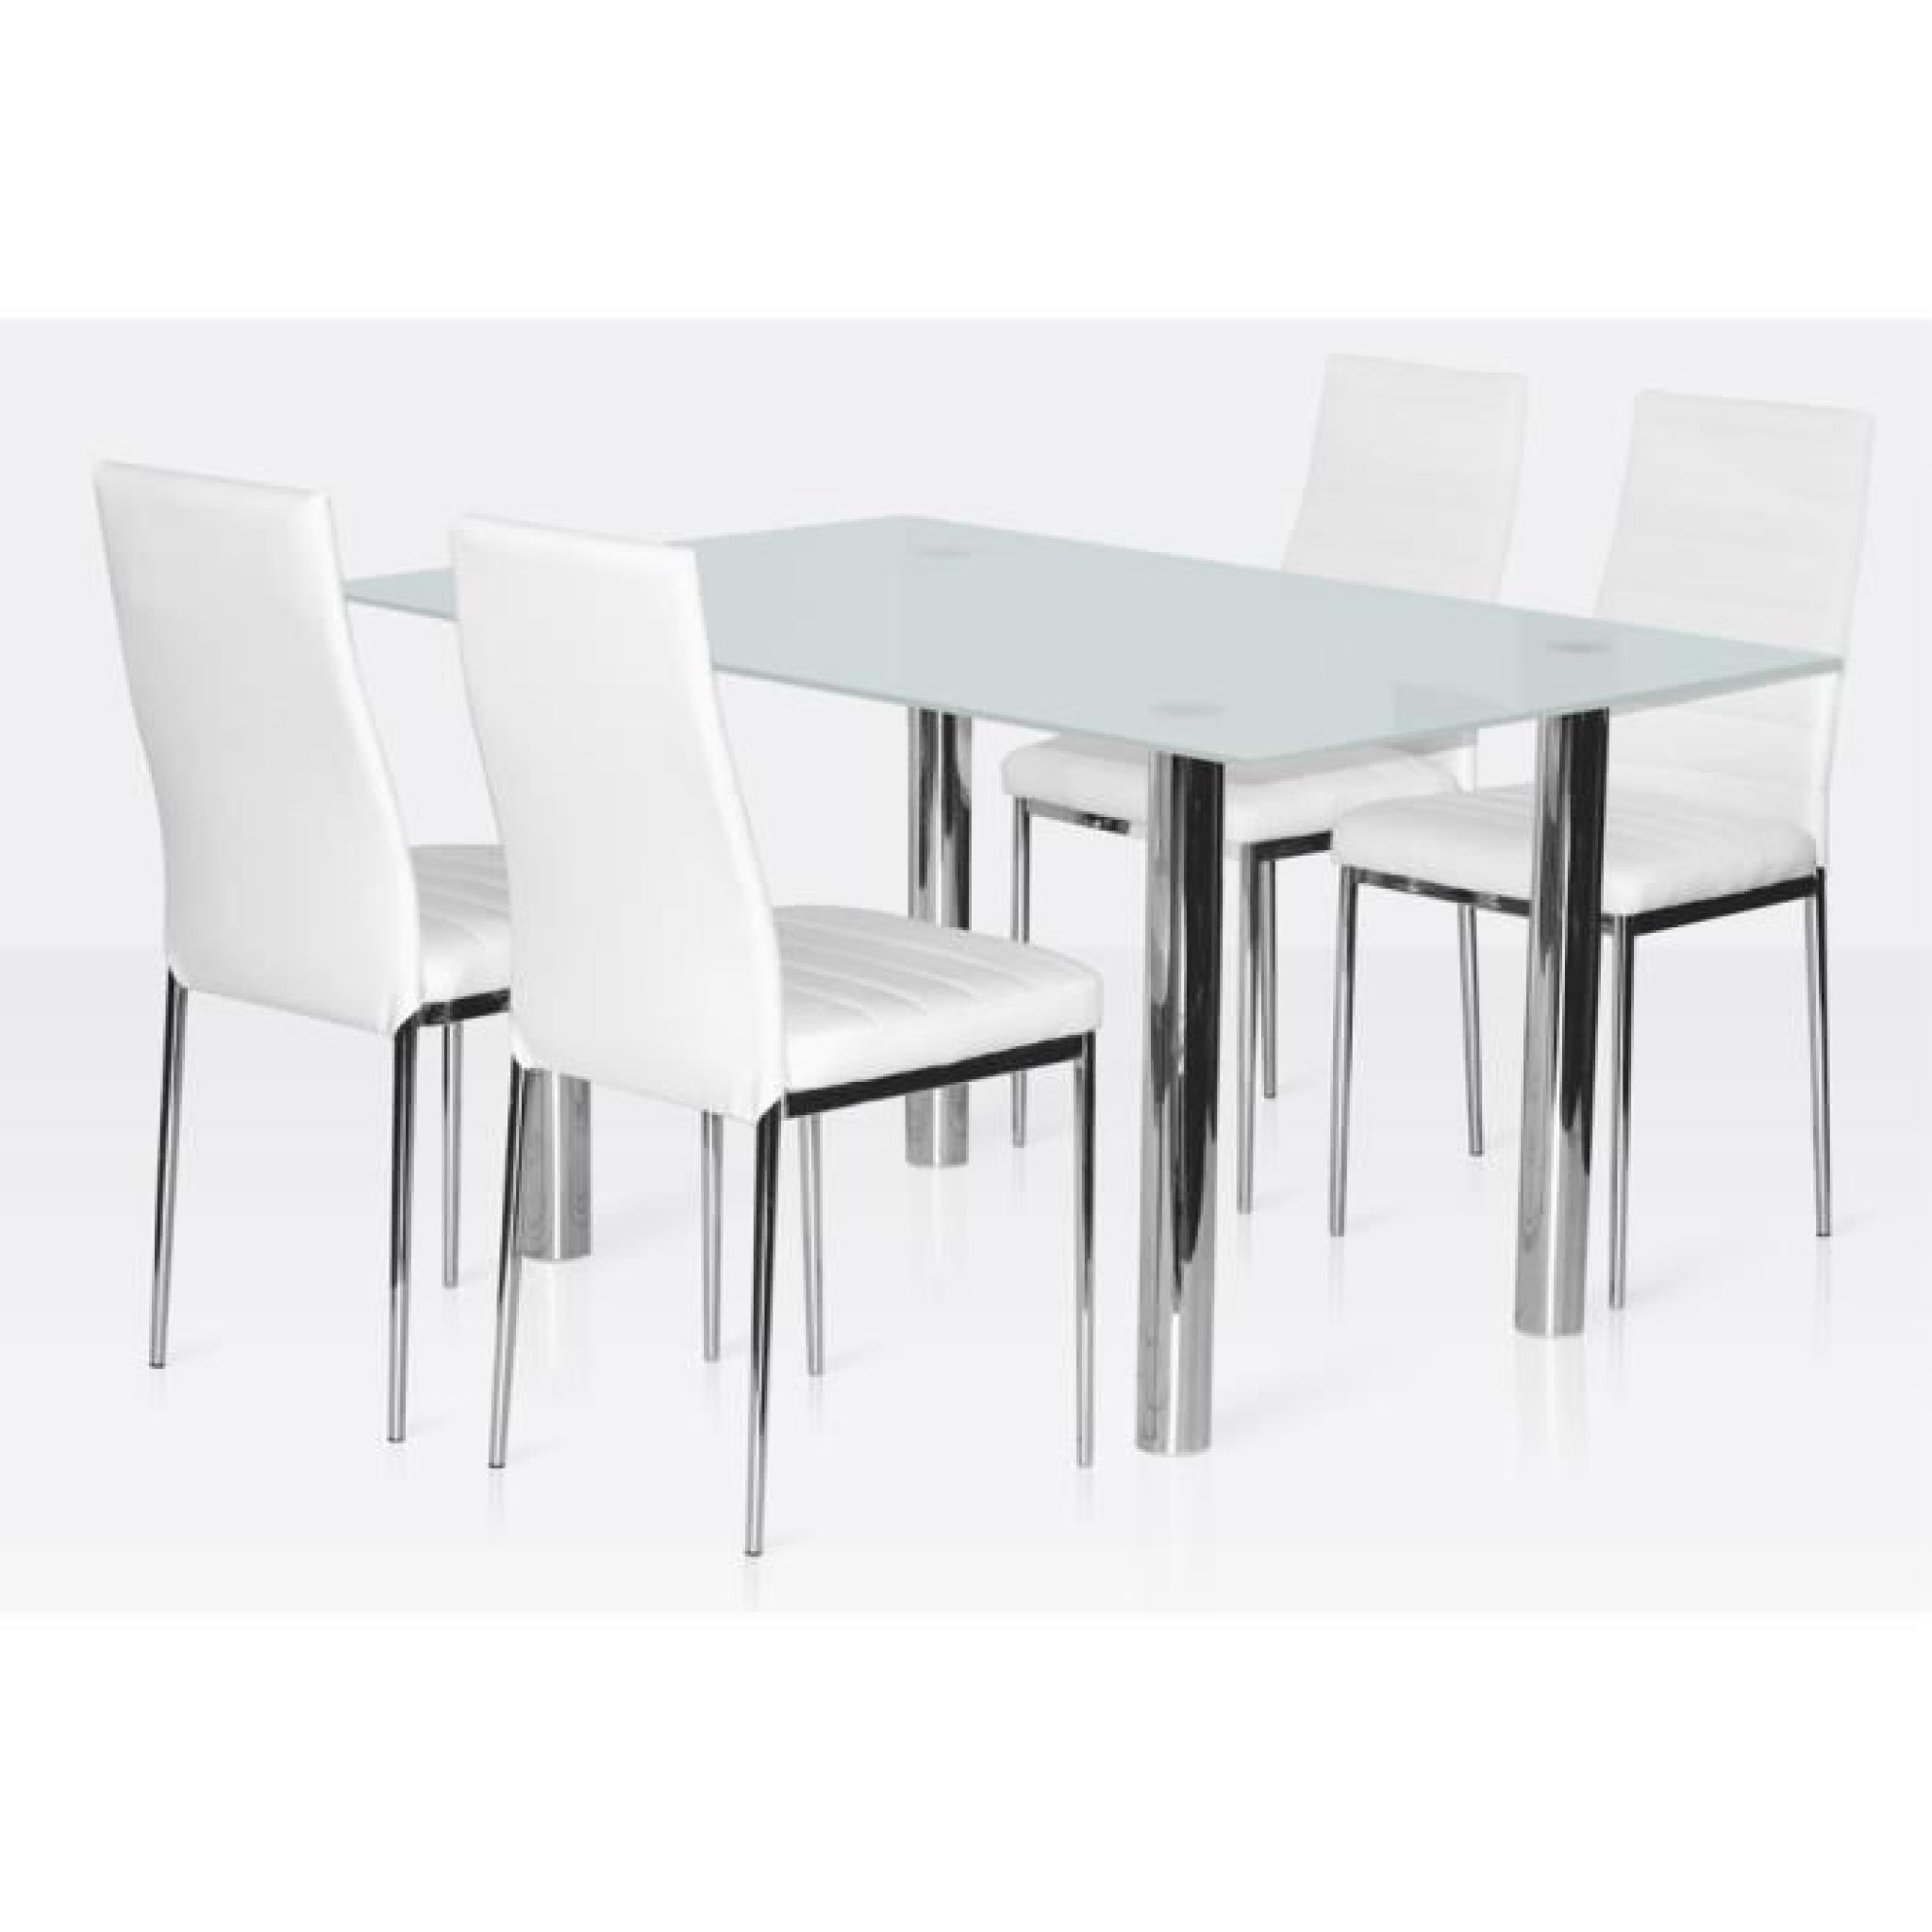 90 table a manger en verre design pas cher table a for Table en verre salle a manger